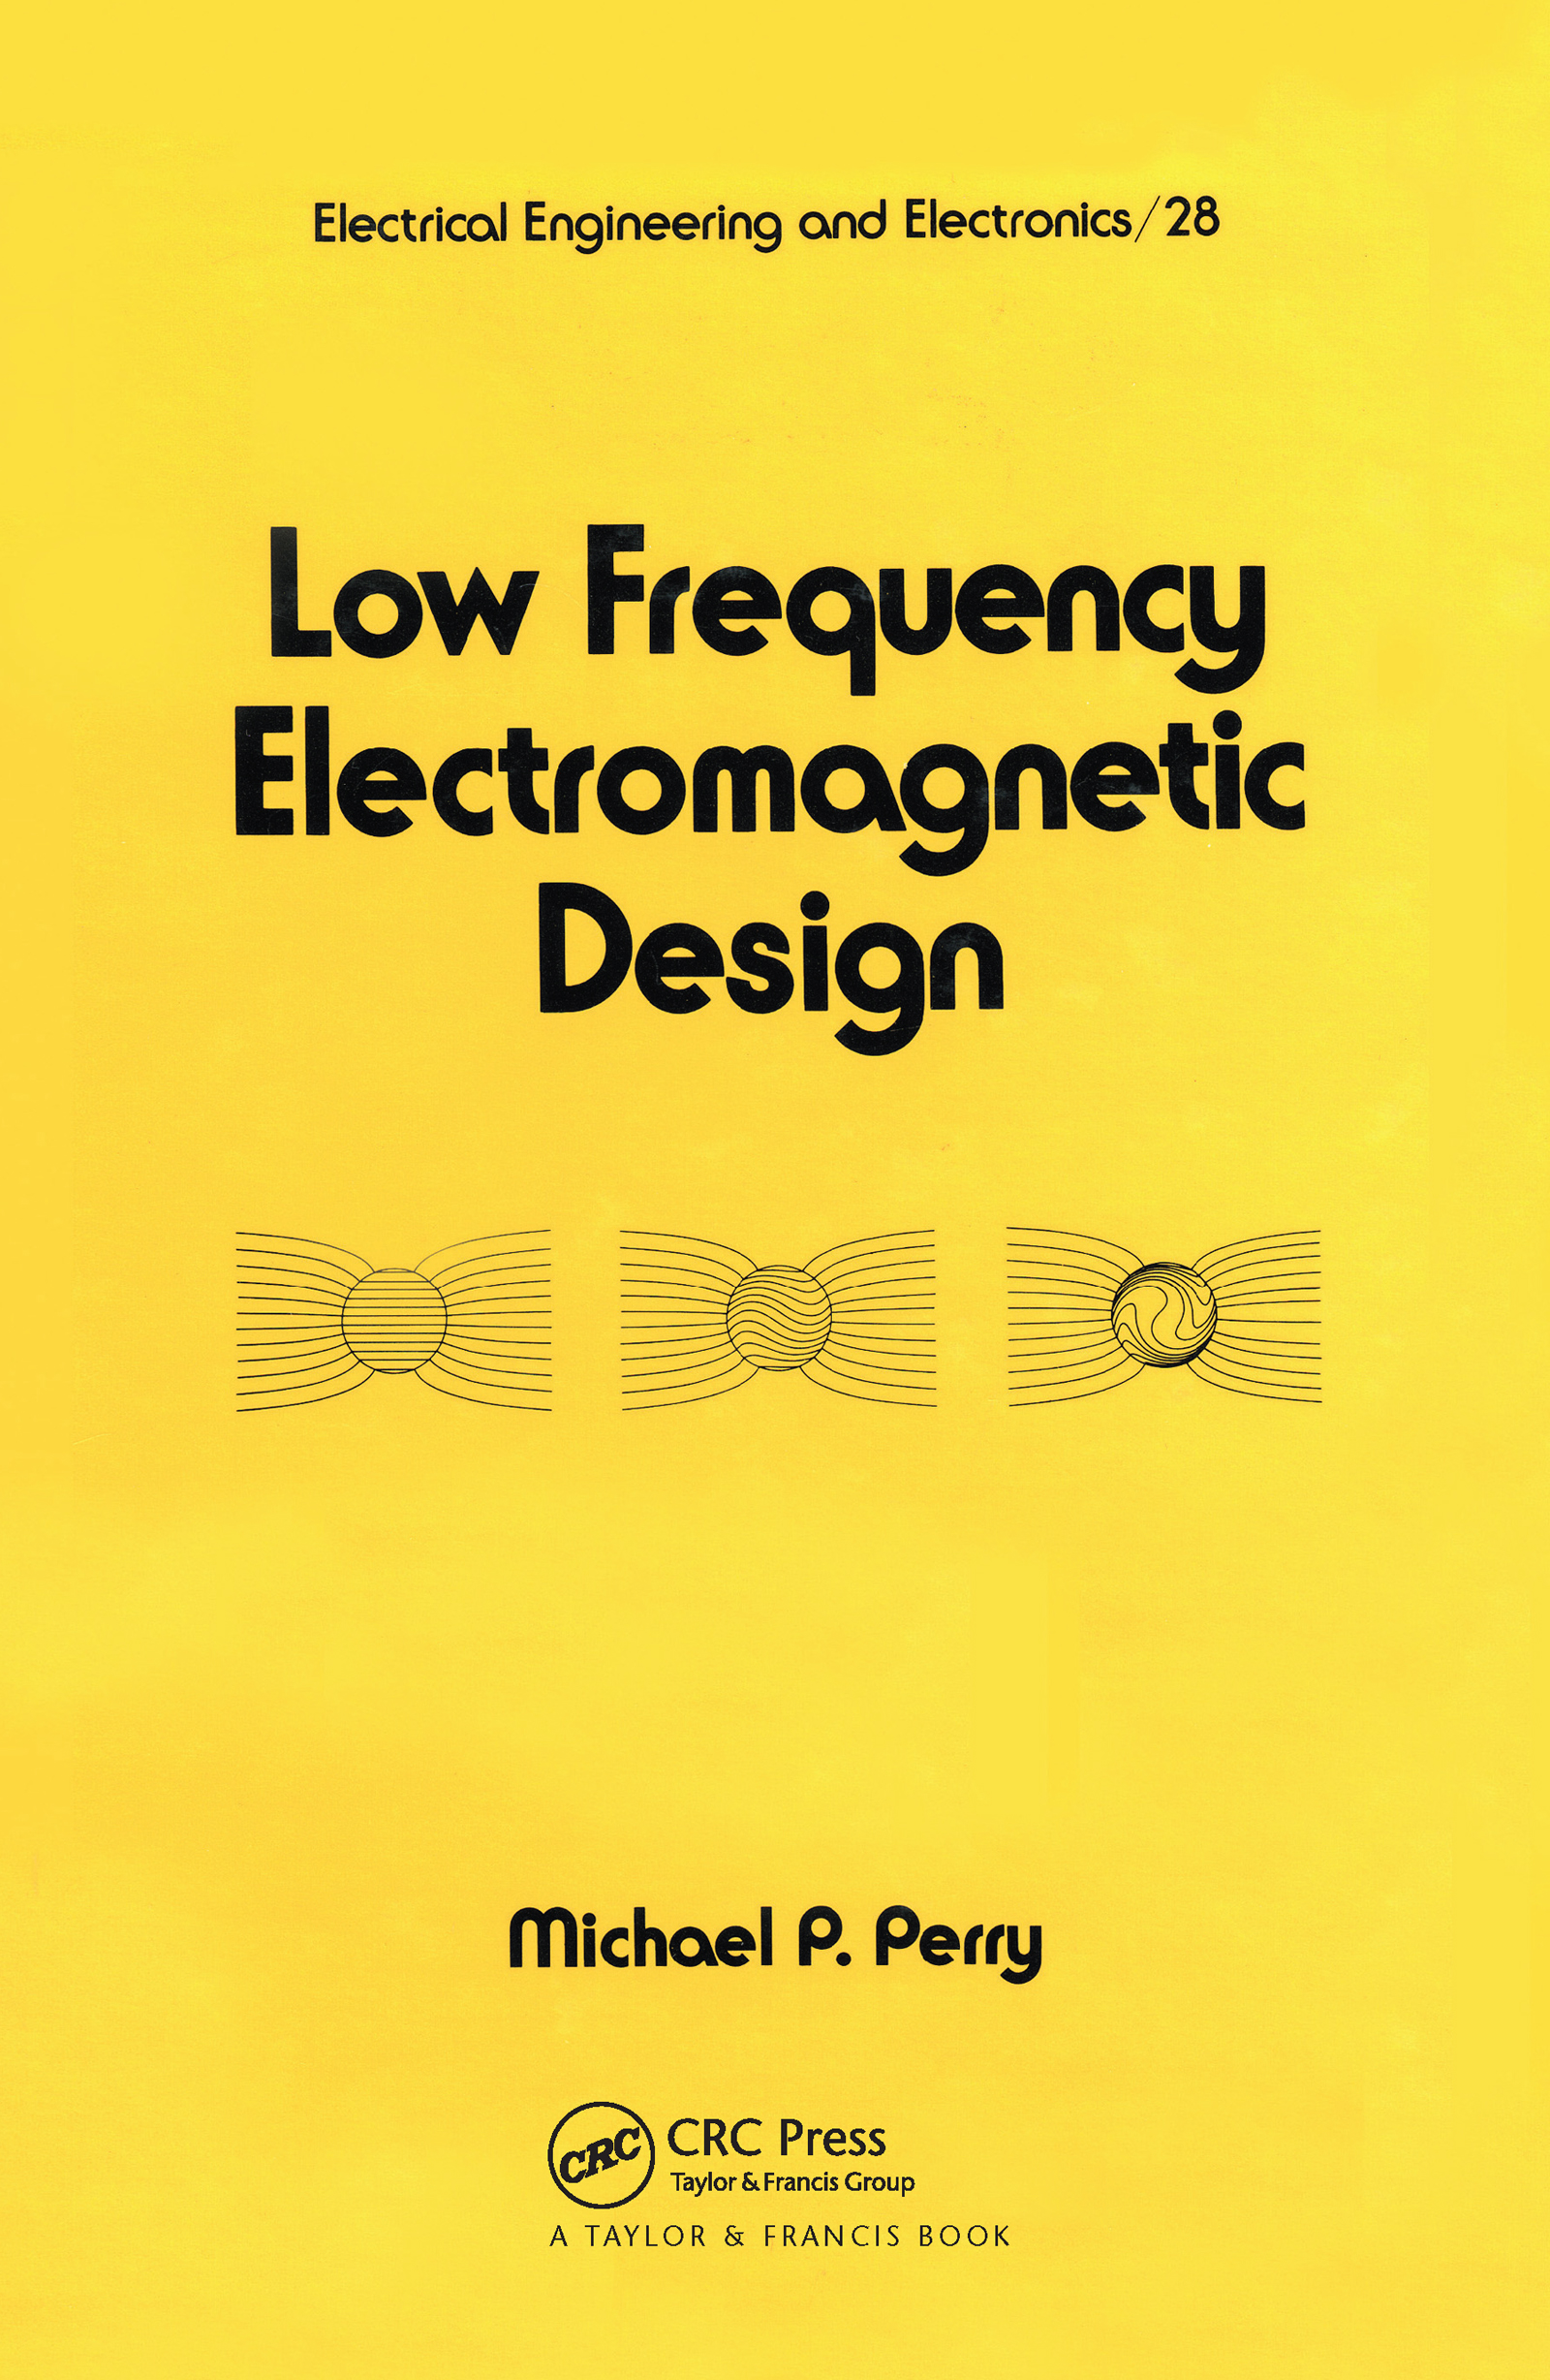 Low Frequency Electromagnetic Design